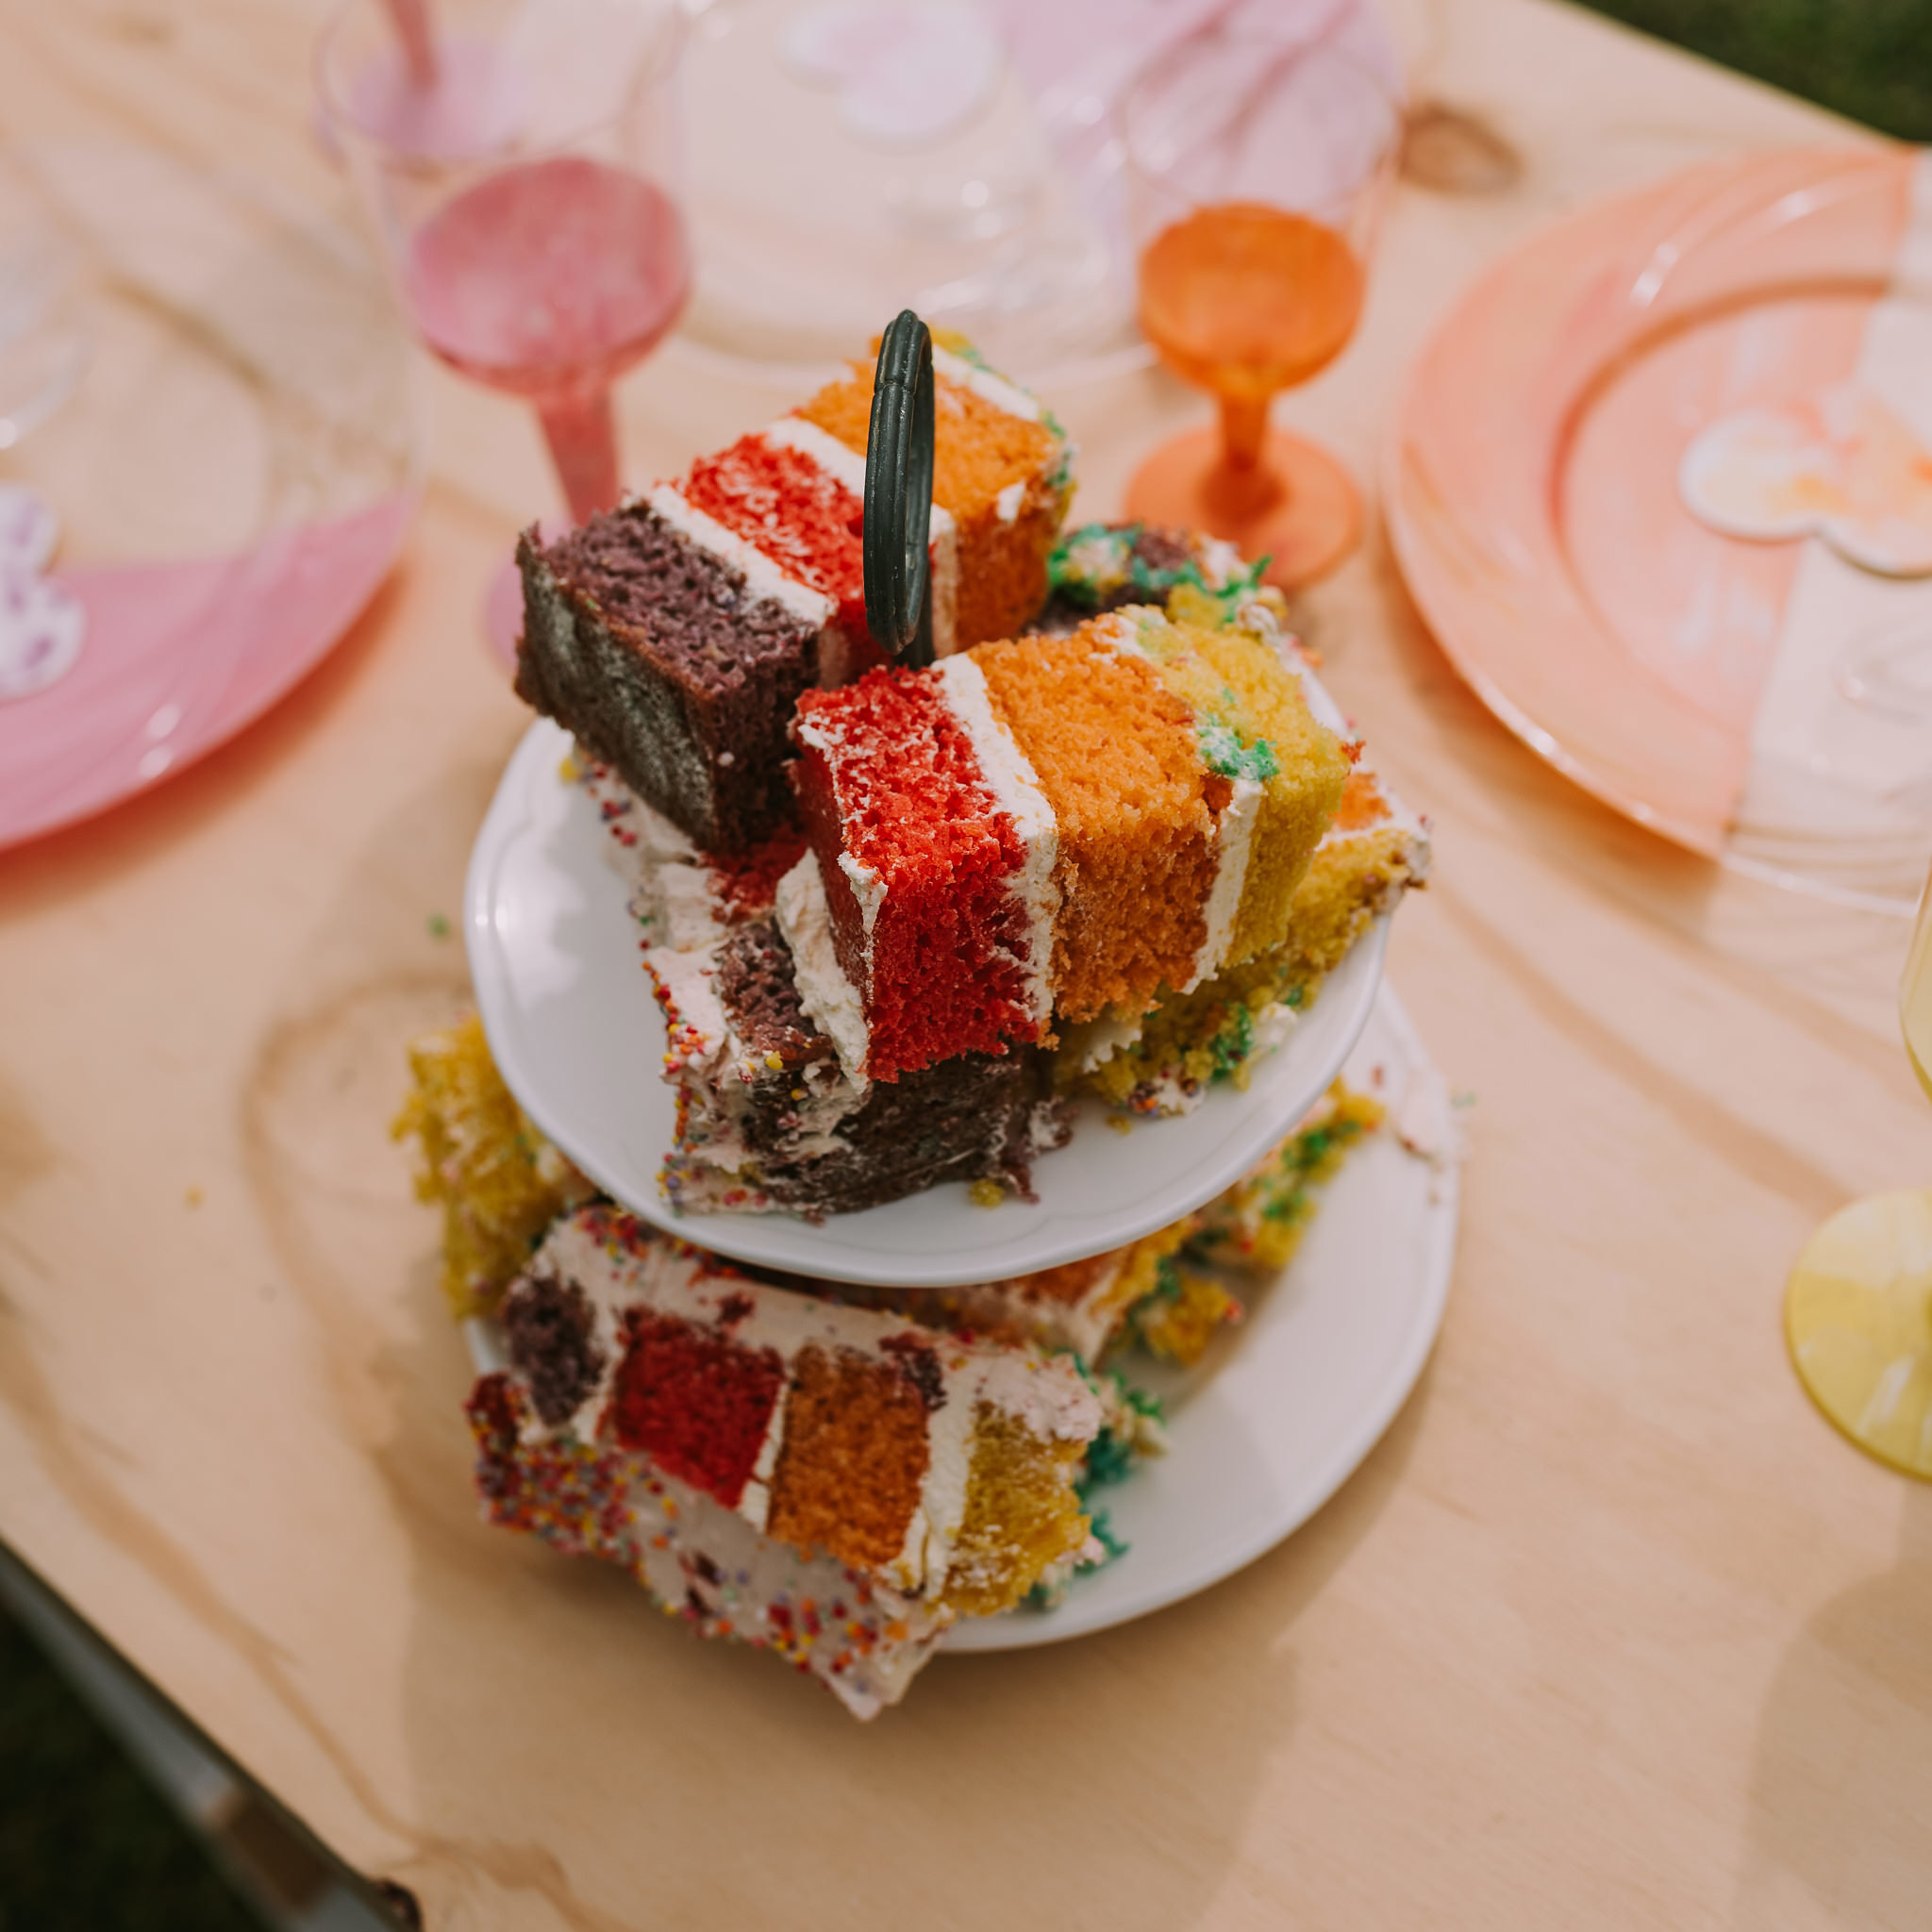 The rainbow layer cake by Baked by Gemma had the most amazingly delicious fresh strawberries and cream icing I've tasted!Photo by Angus Porter Photography